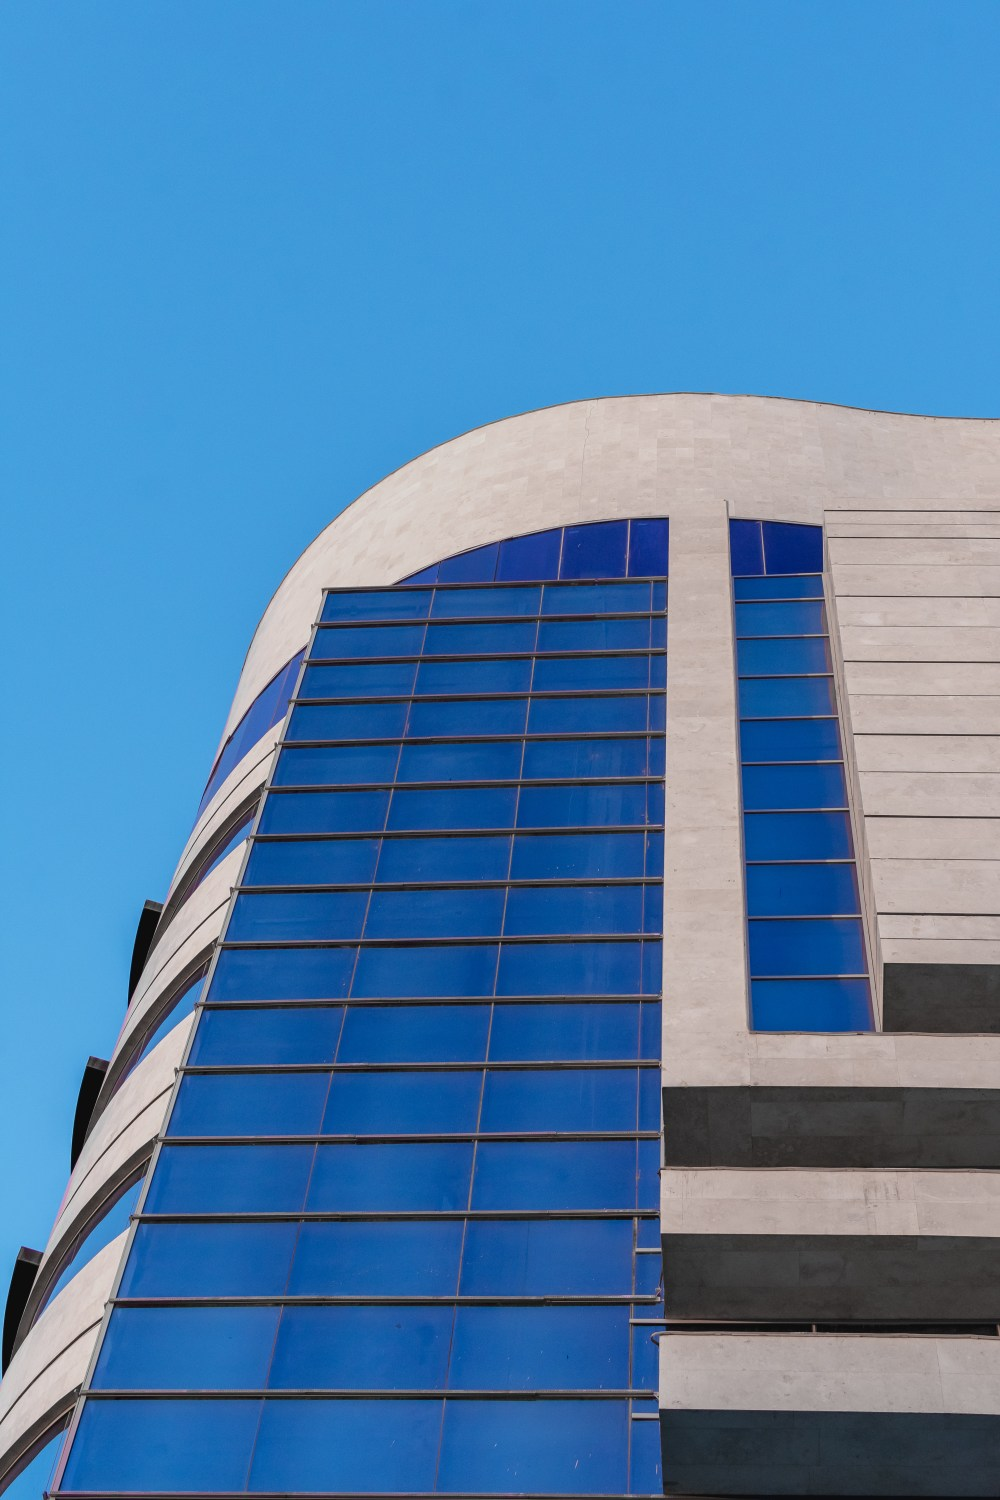 hight resolution of low angle photography of gray and blue concrete building